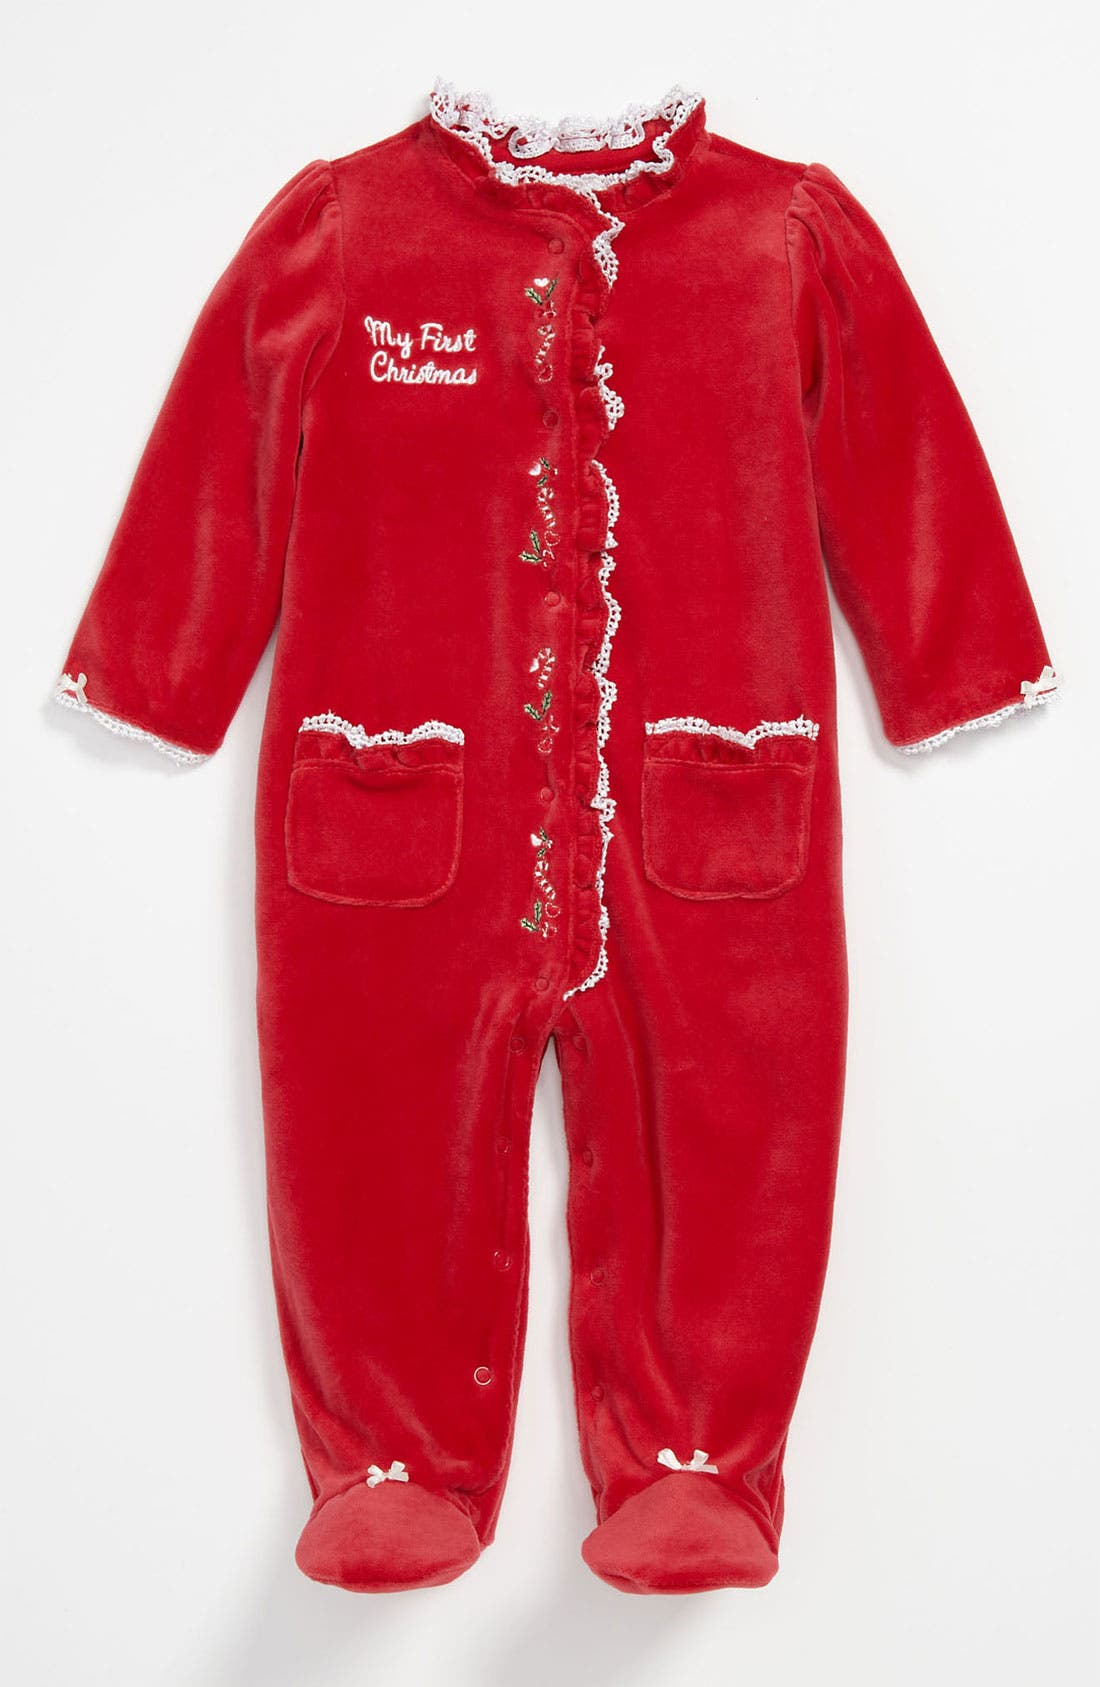 Alternate Image 1 Selected - Little Me 'My First Christmas' Velour Footie (Infant)